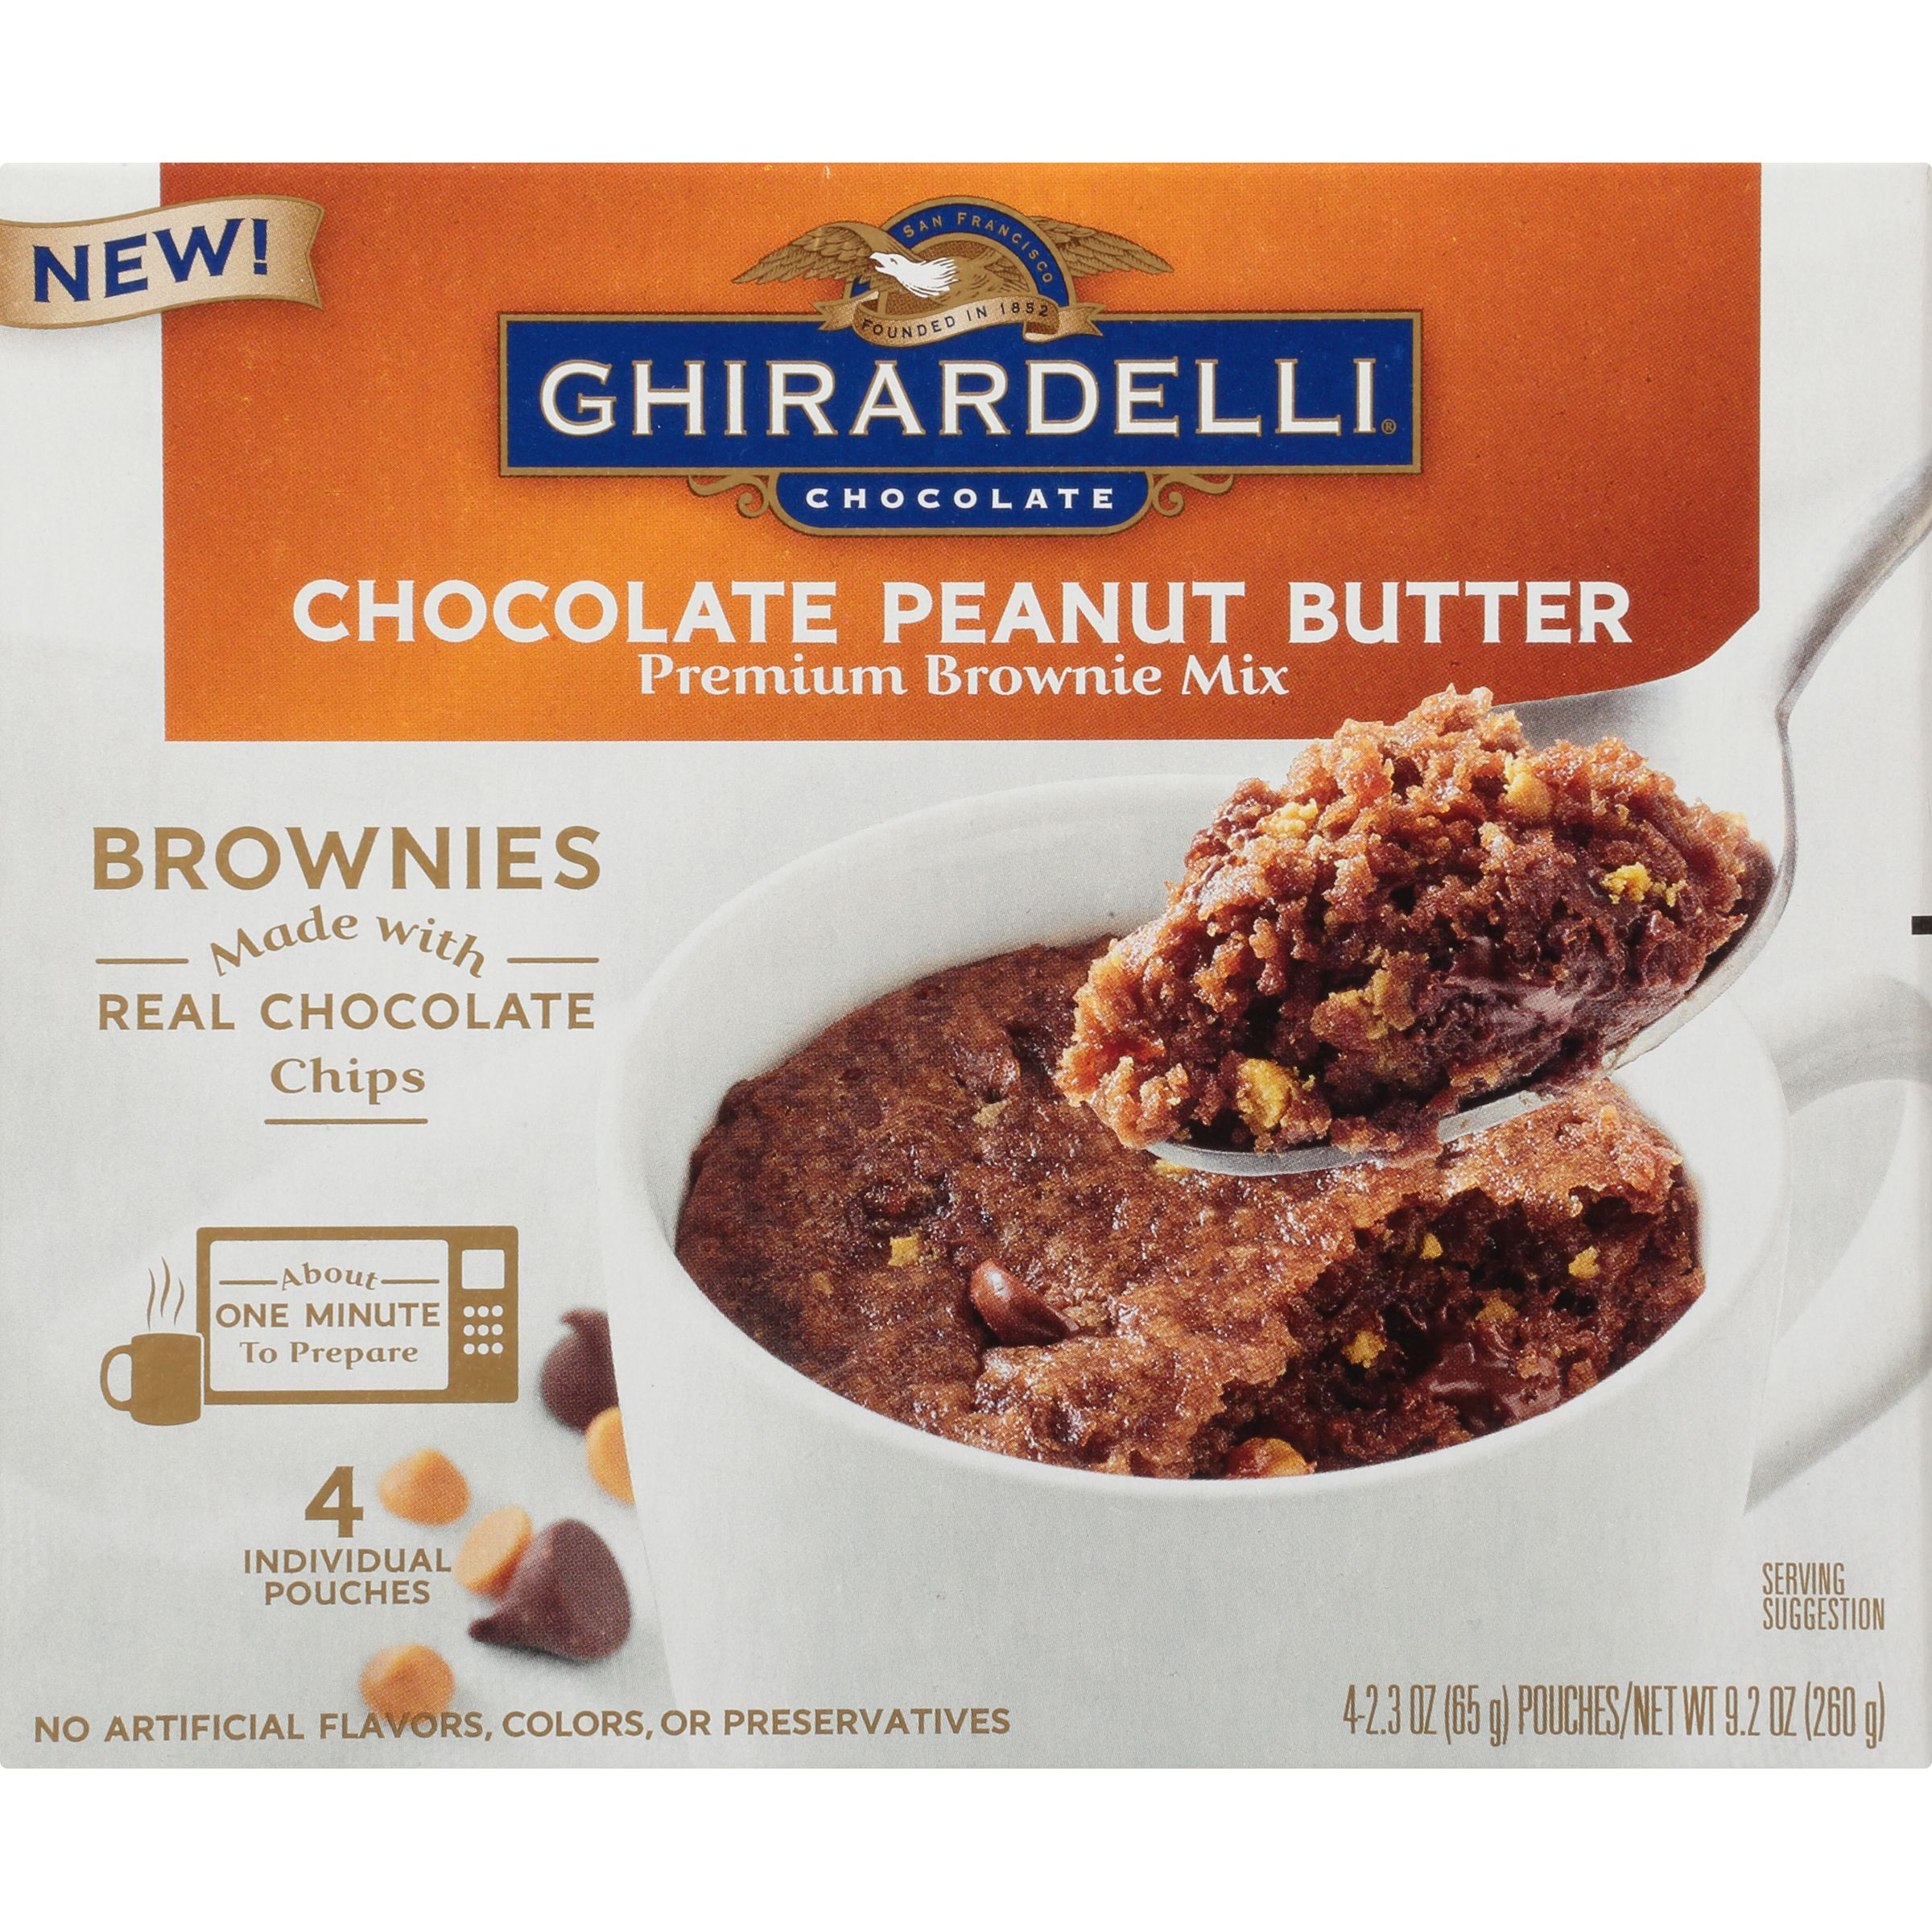 Ghirardelli Chocolate Peanut Butter Mug Brownie Mix, 9.2-Ounce Box